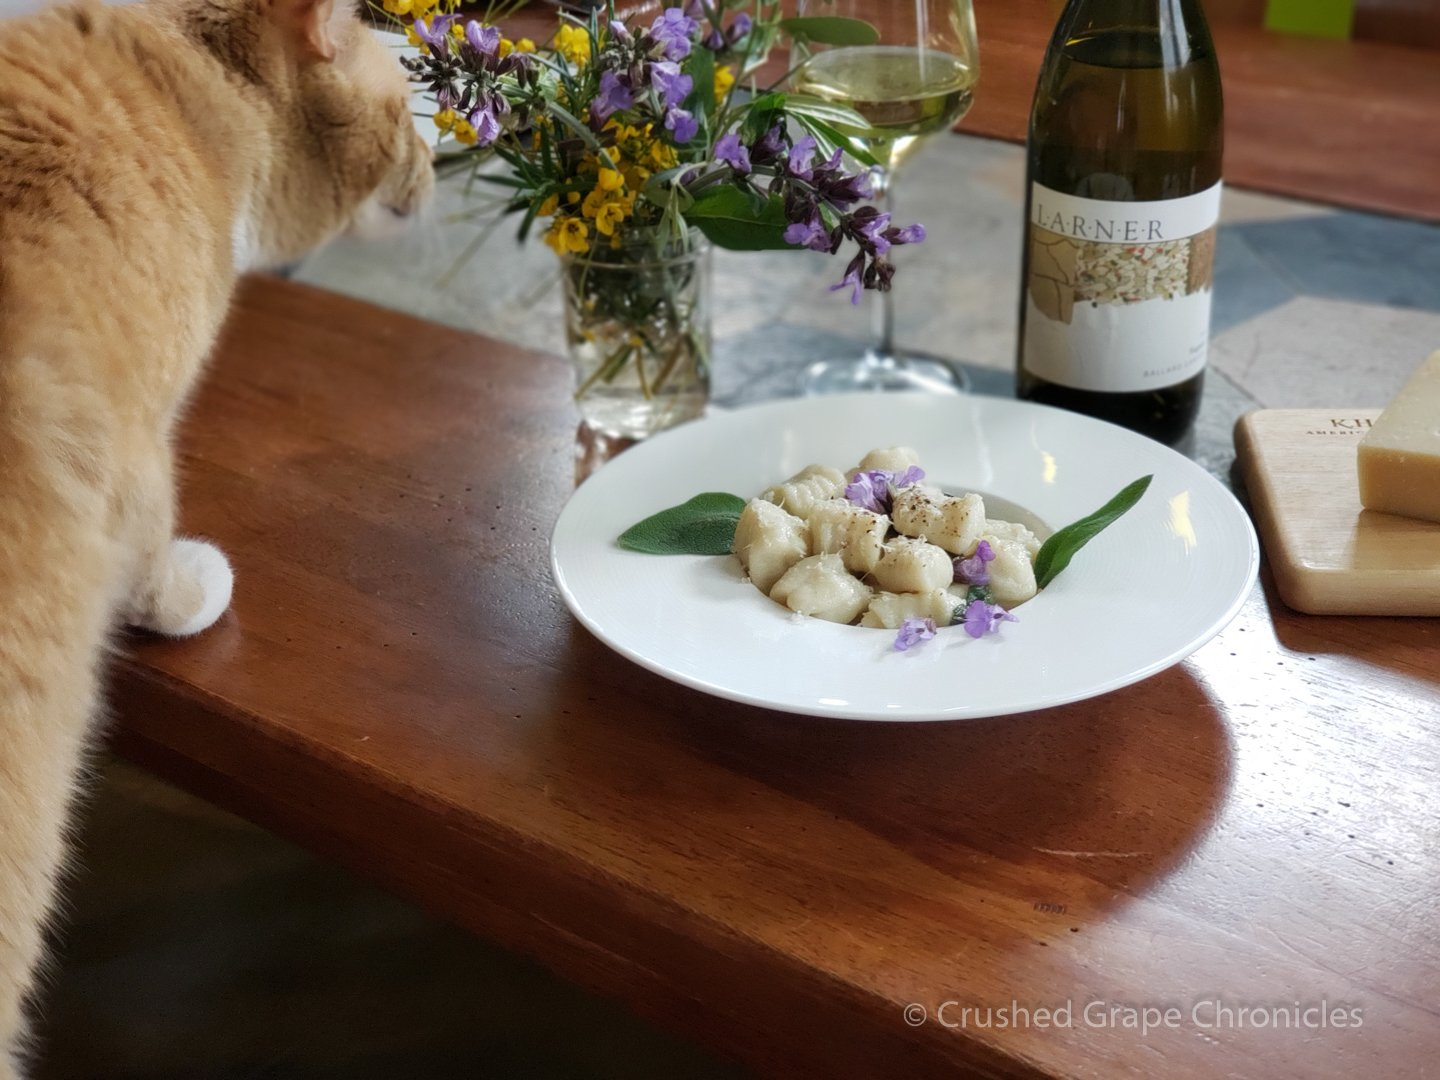 Gnocchi, Viognier and curious cats